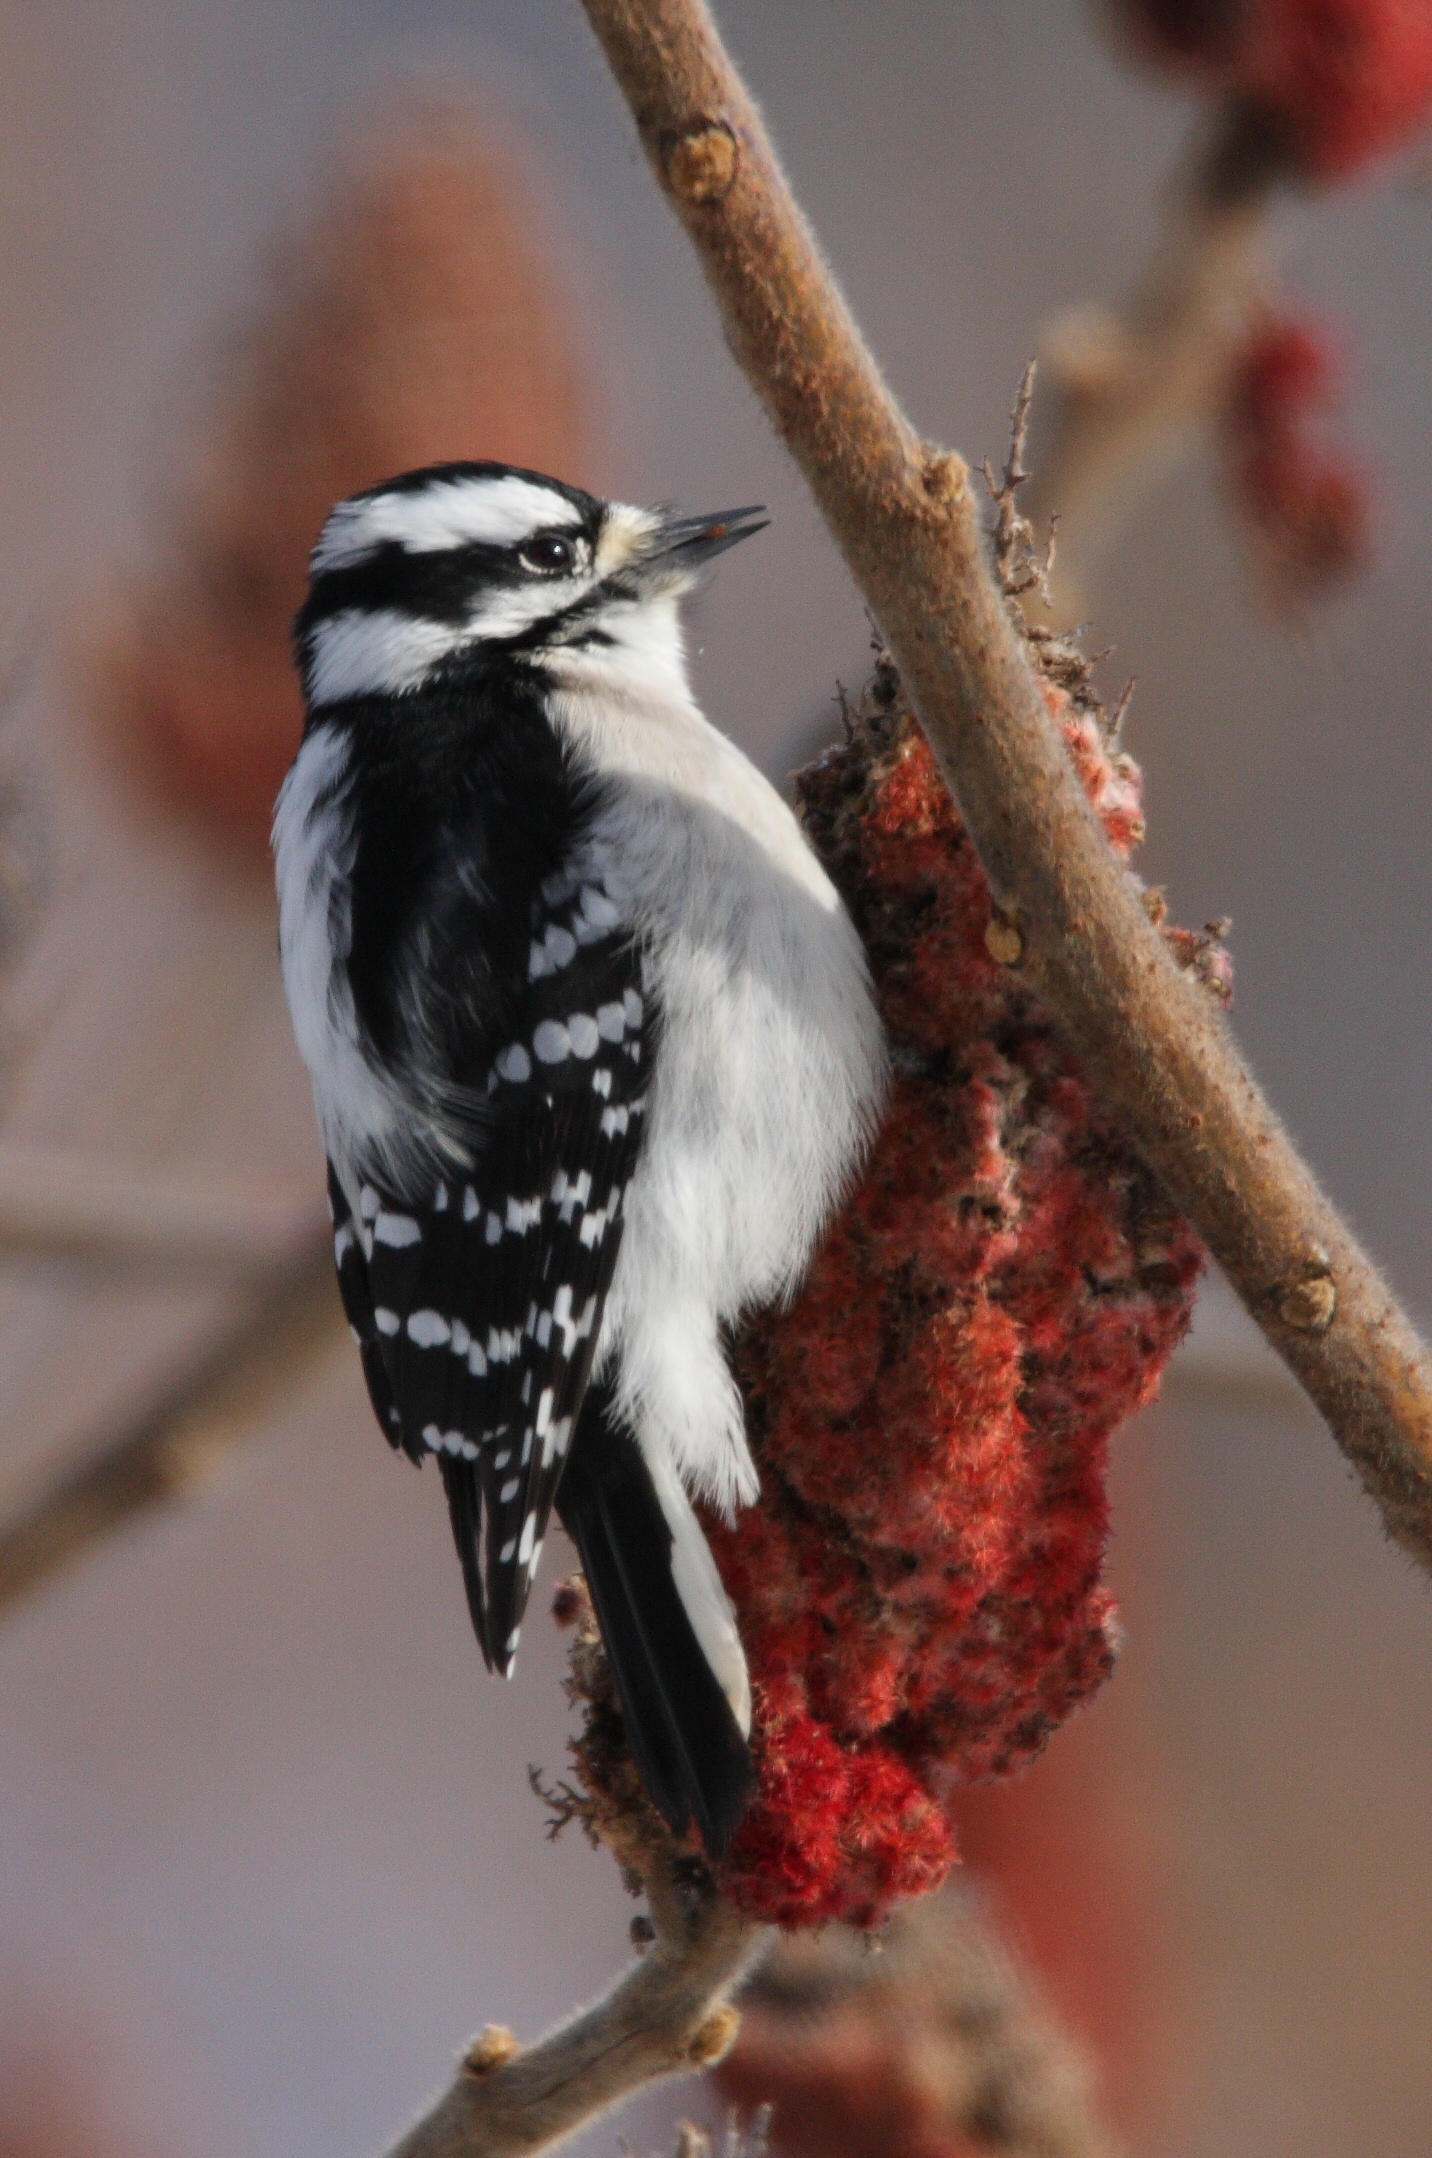 How to deal with problem Woodpecker in Pennsylvania